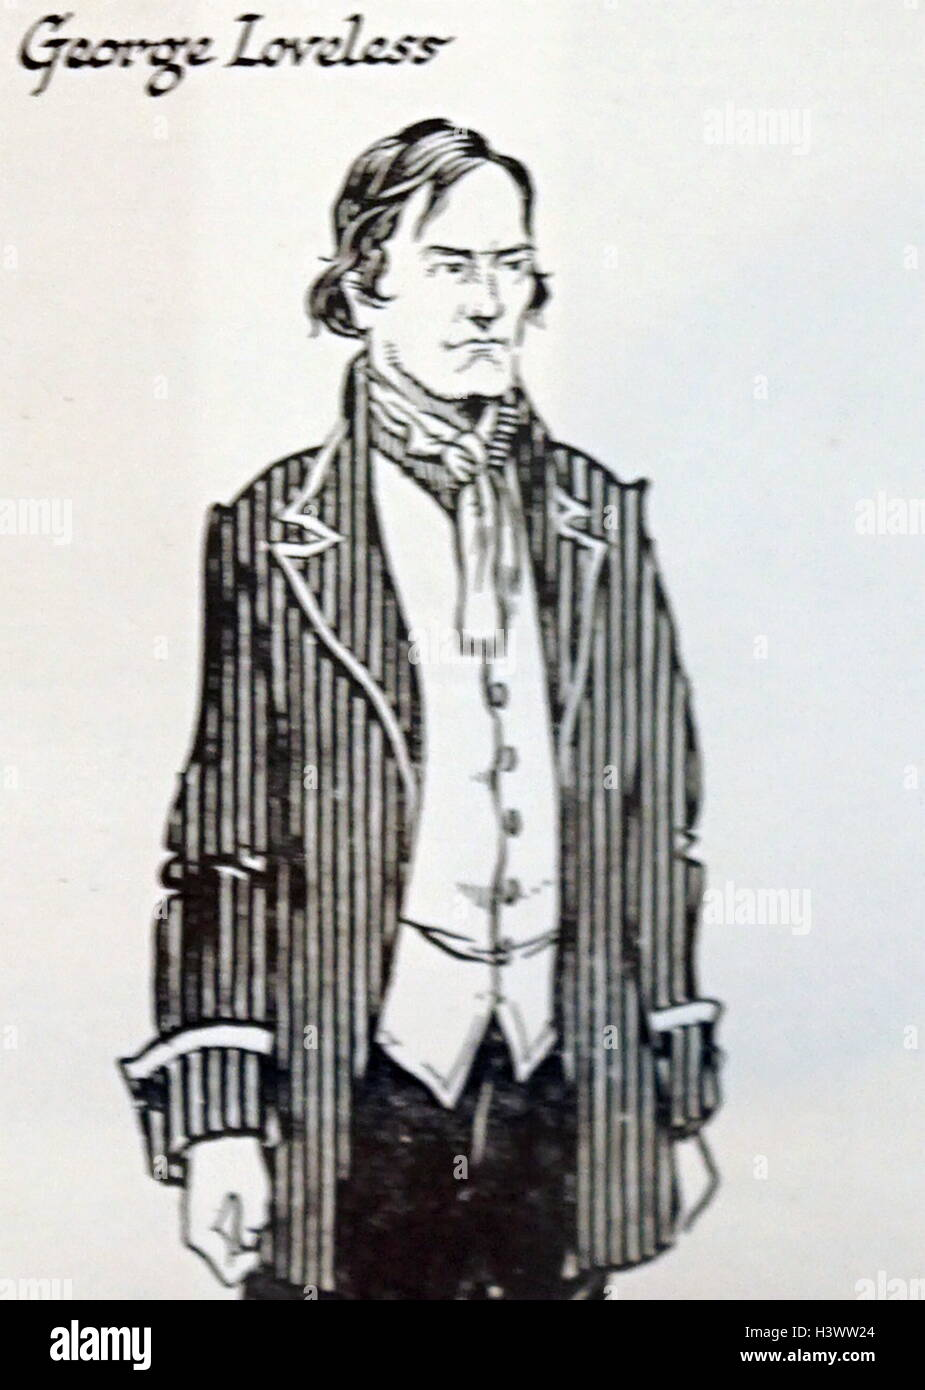 Illustration of George Loveless, one of the Tolpuddle Martyrs - Stock Image